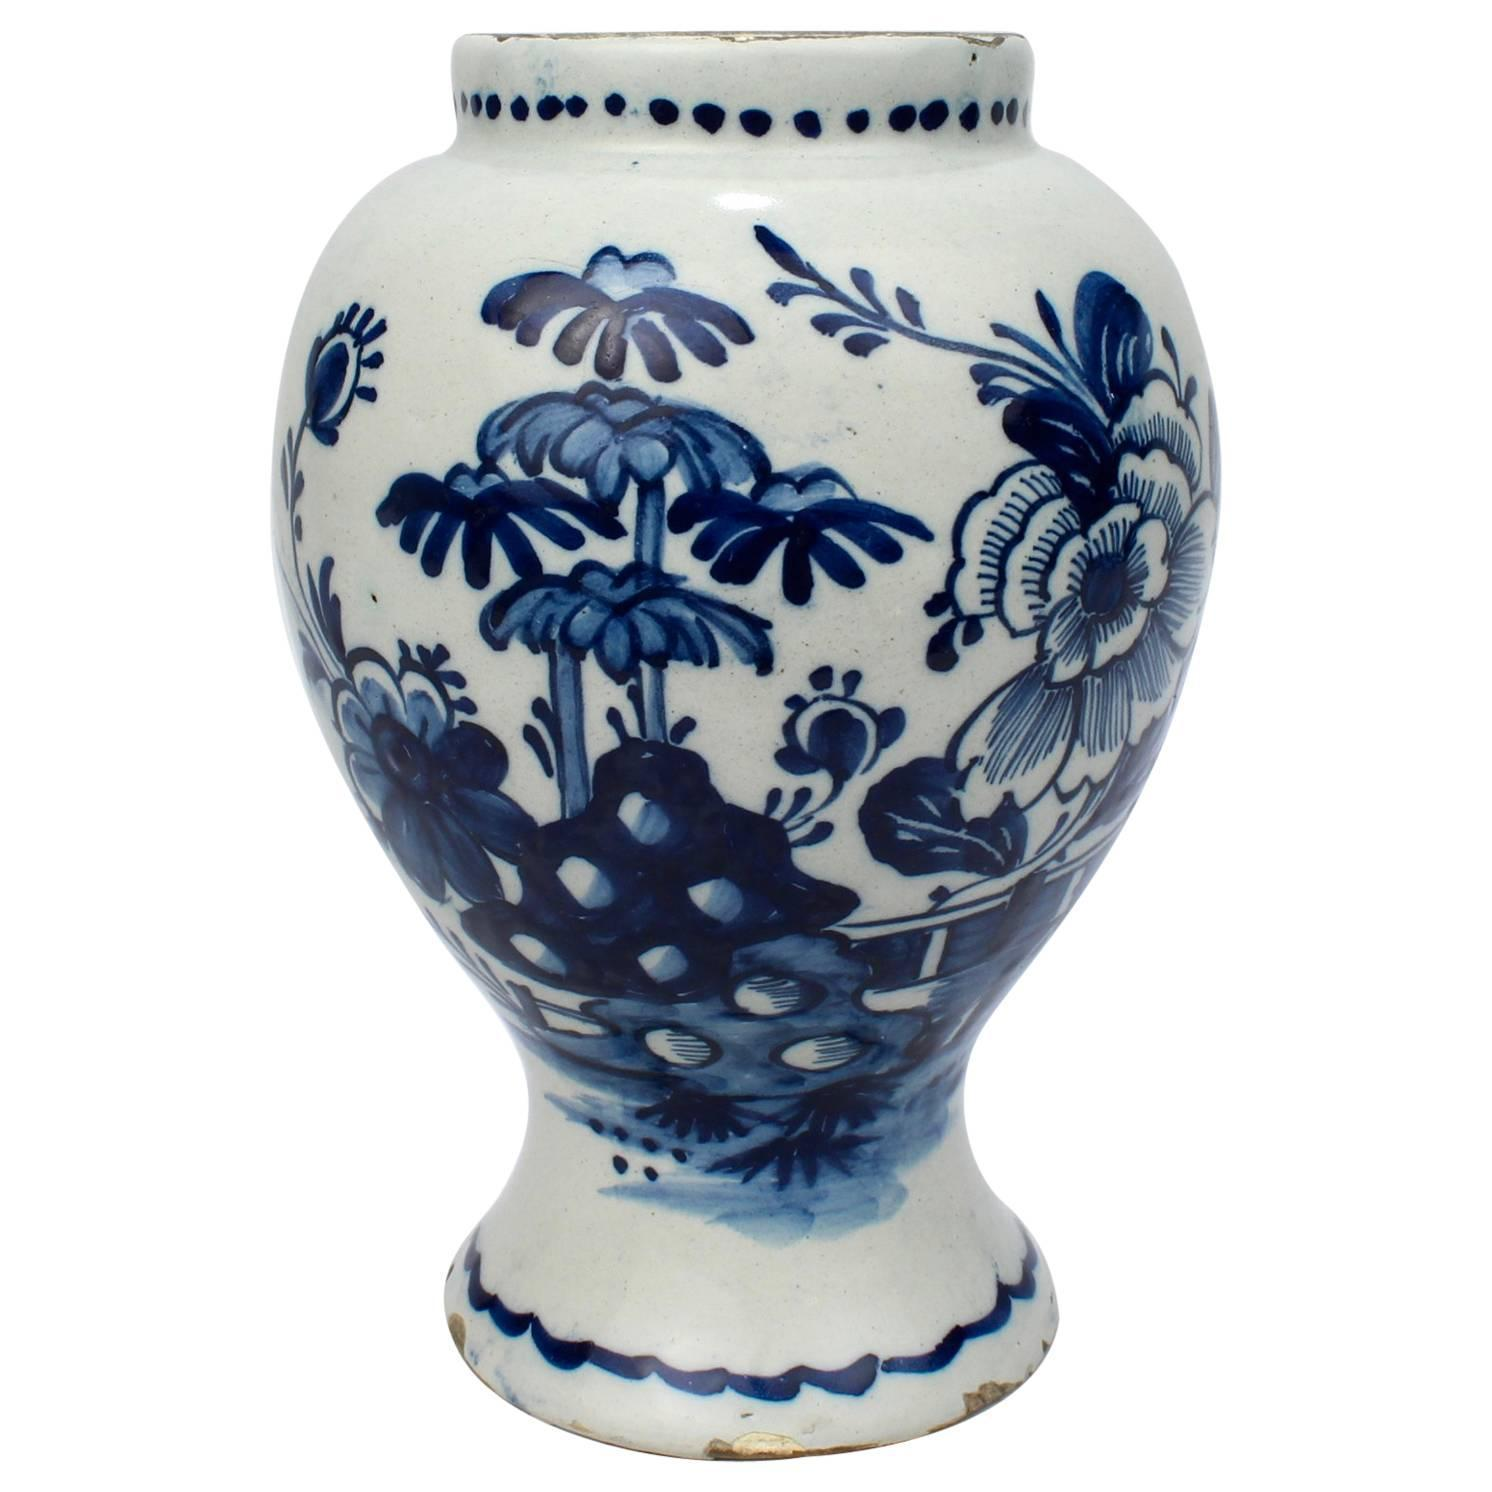 Delft vases and vessels 28 for sale at 1stdibs 18th century tin glazed dutch delft pottery blue and white vase or jar reviewsmspy